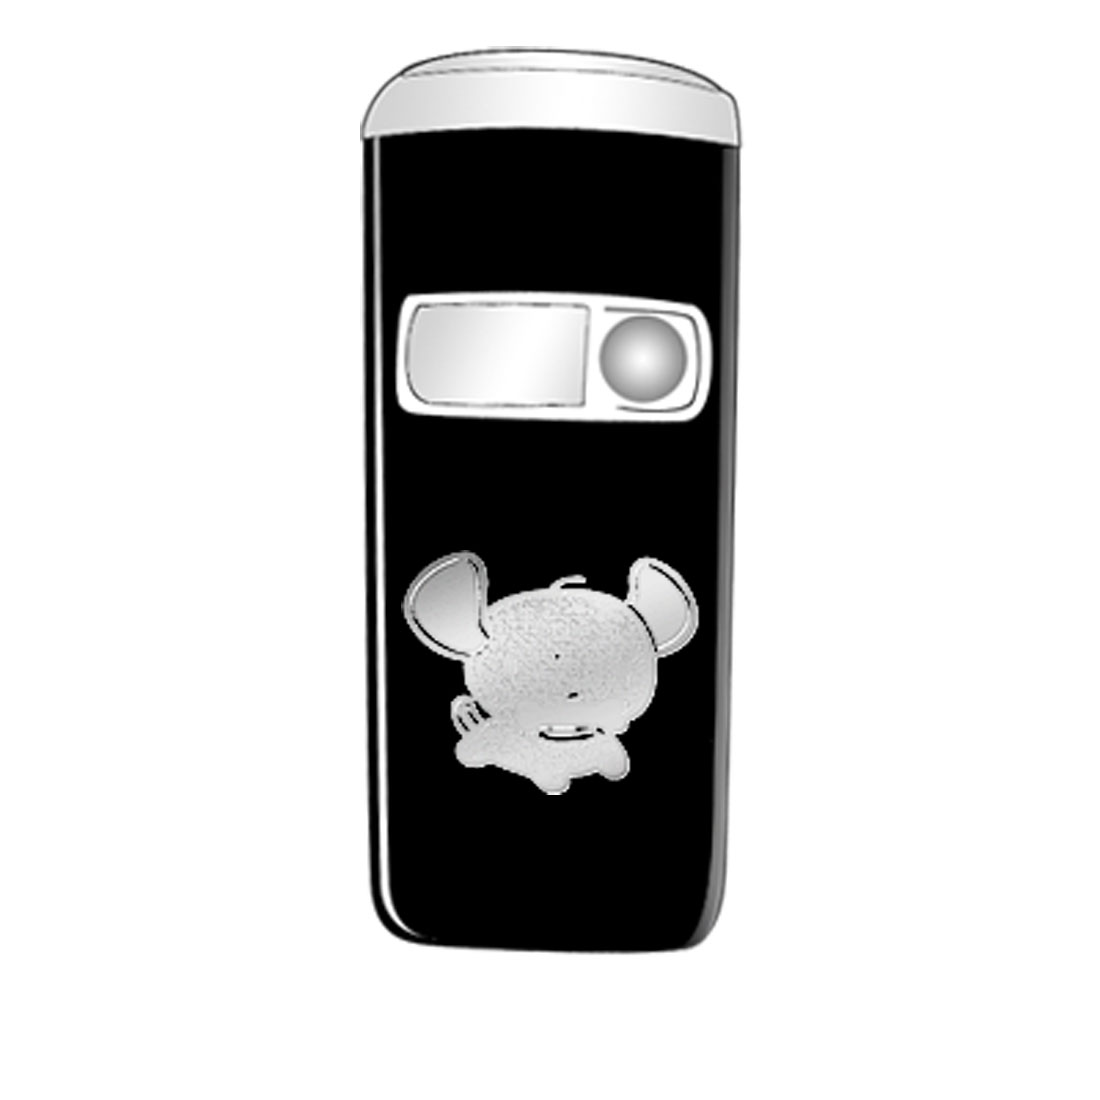 Metallic Sticker for Phone NDS MP4 Mp5- My Doggie